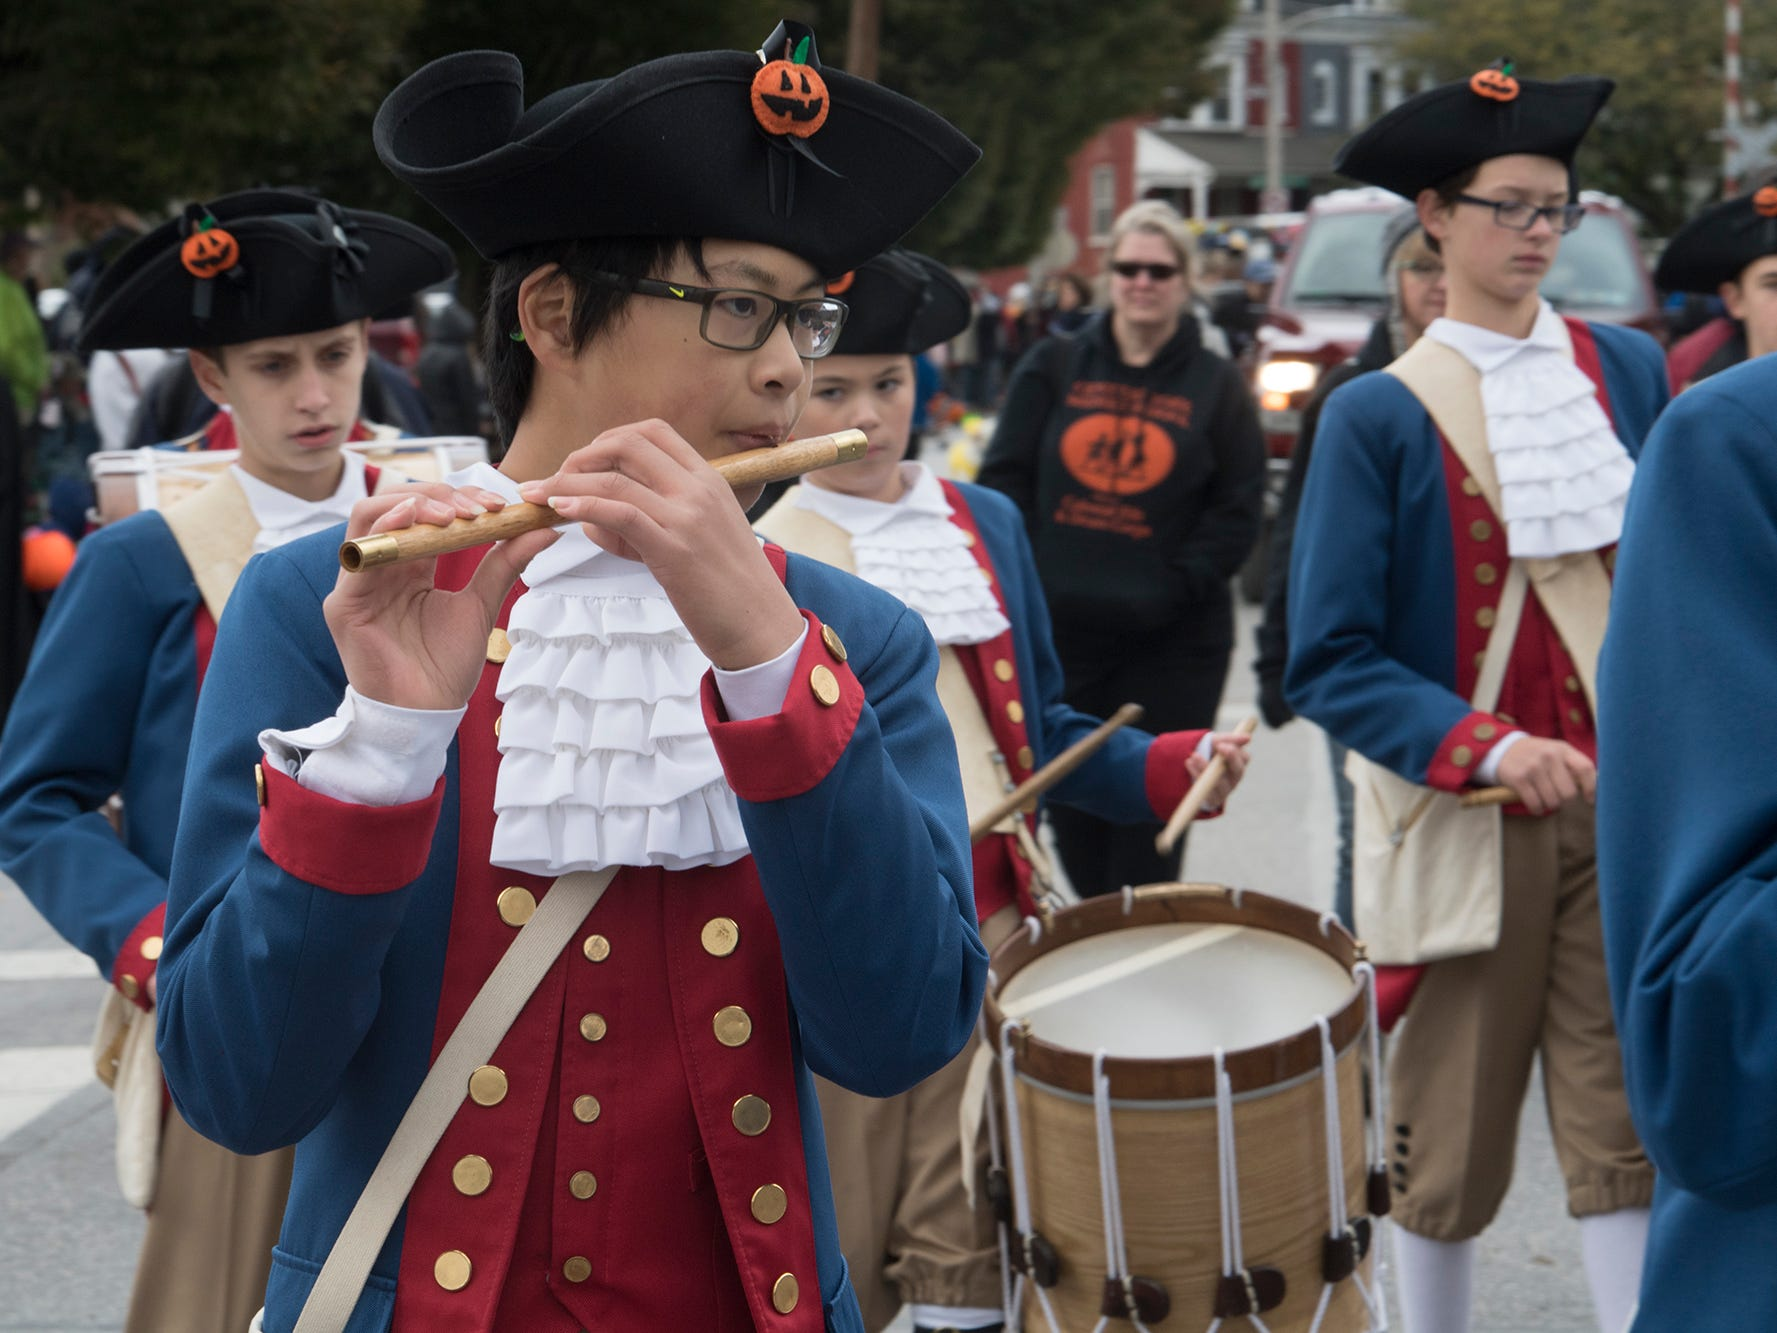 Central York Middle School Colonial Fife & Drum Corps perform during the 69th Annual York Halloween Parade.